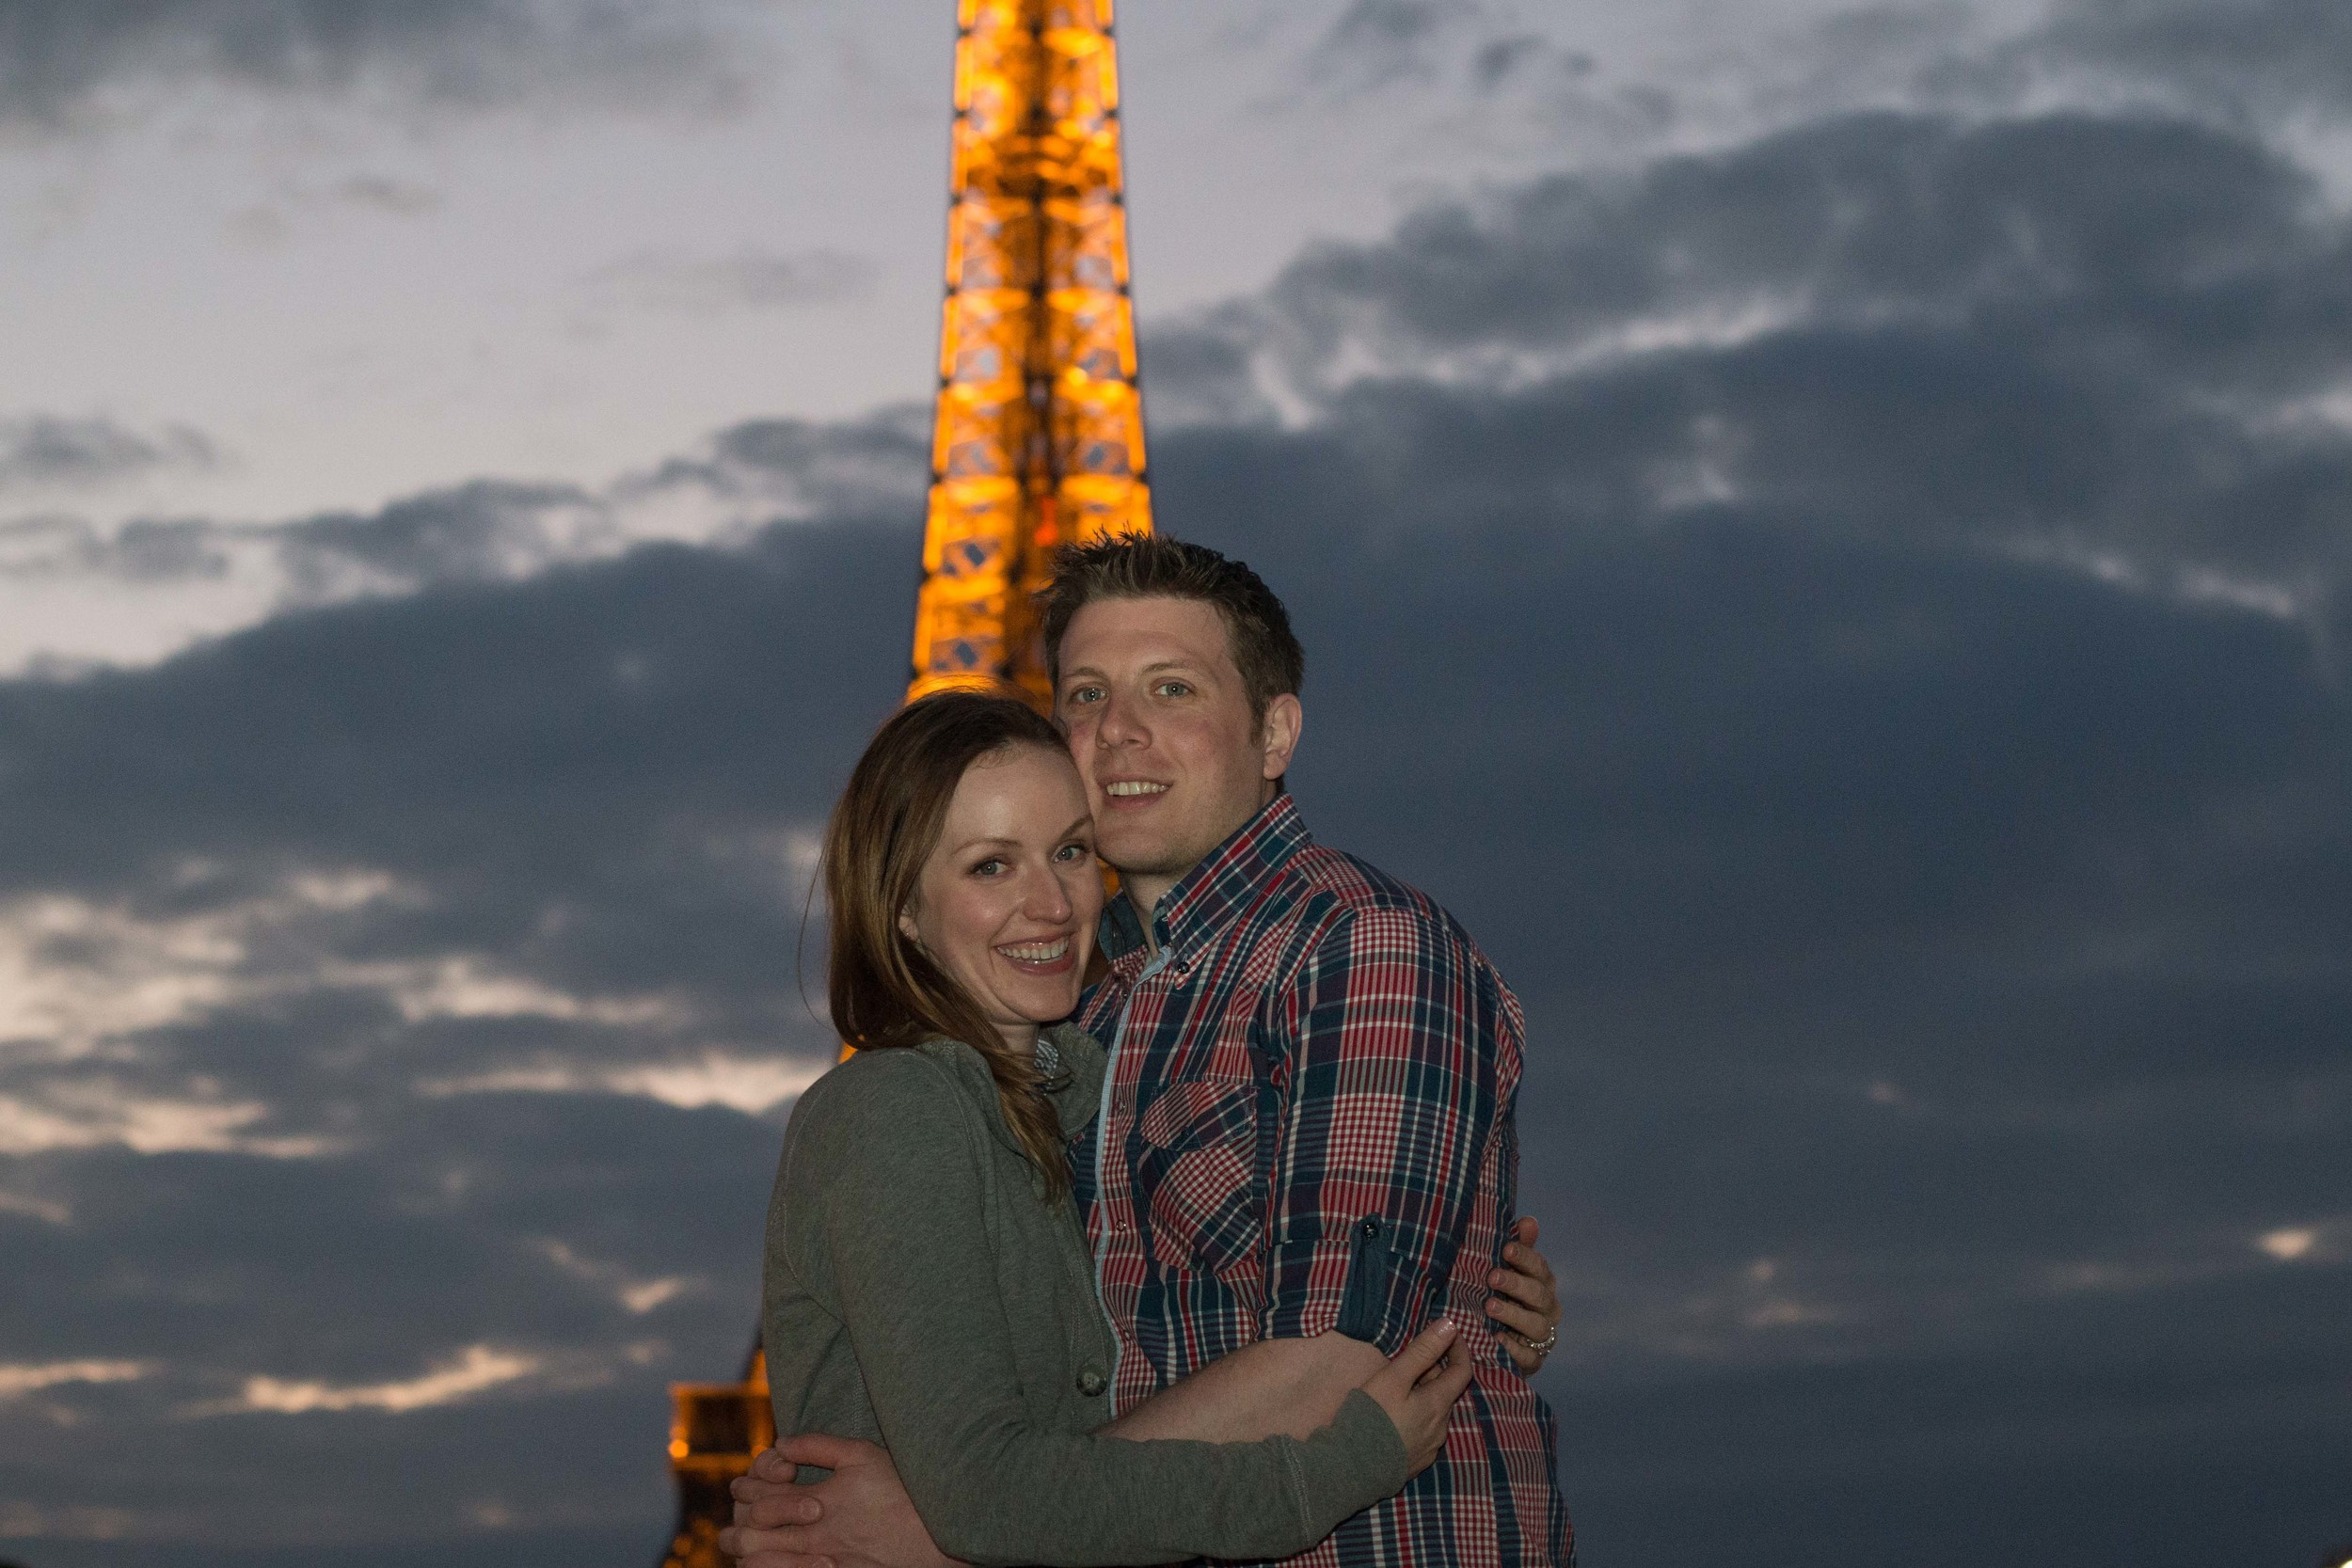 Justine and Andrew in front of the Tower